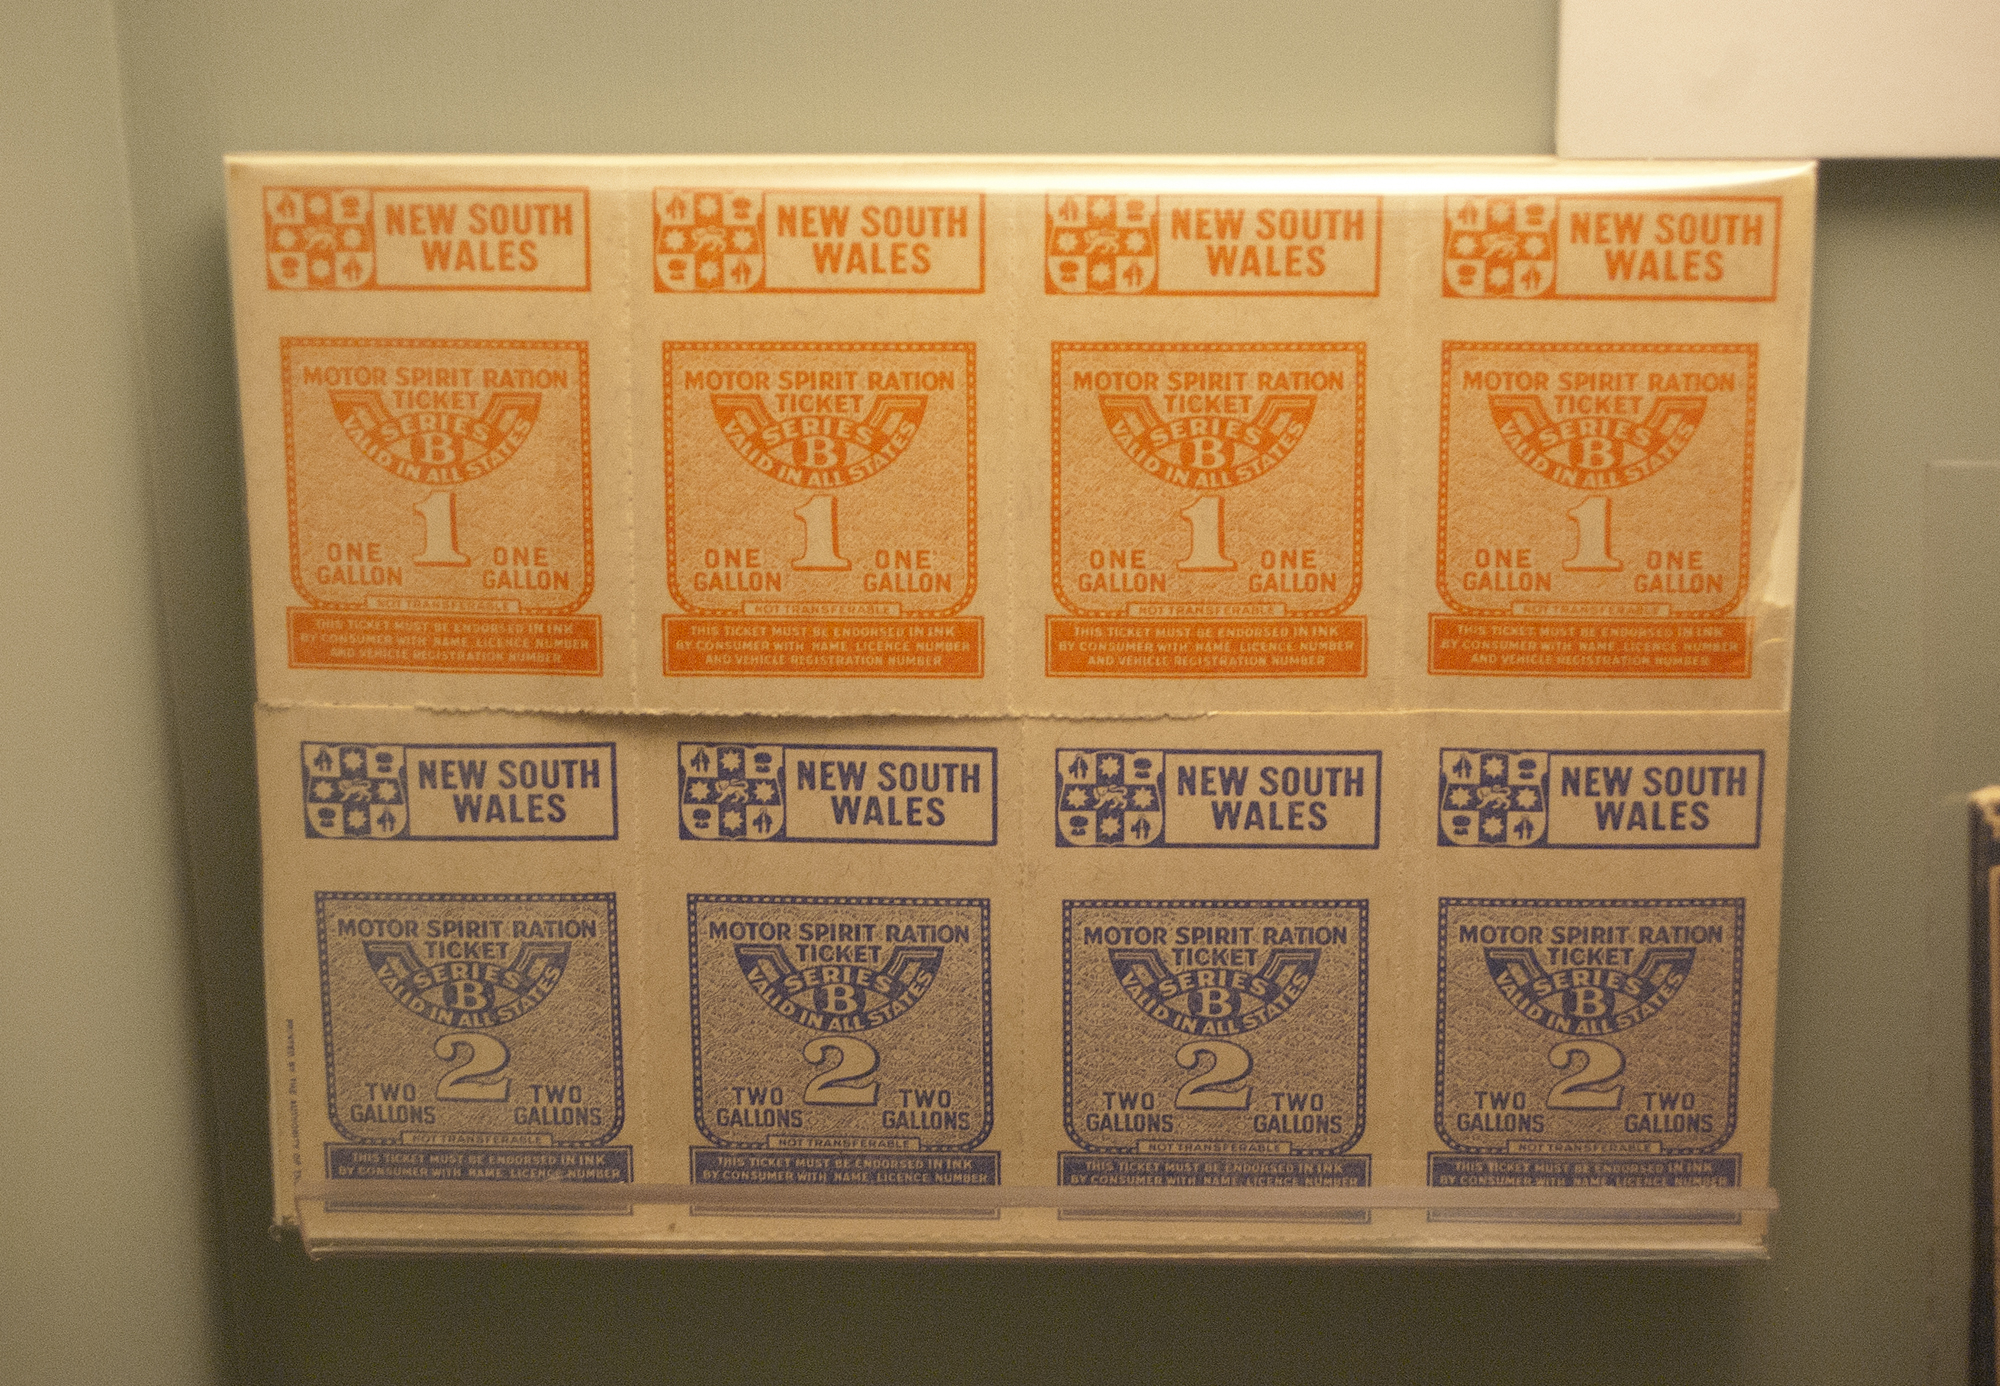 NSW Motor Spirit Ration Tickets on display a the RAAF Museum